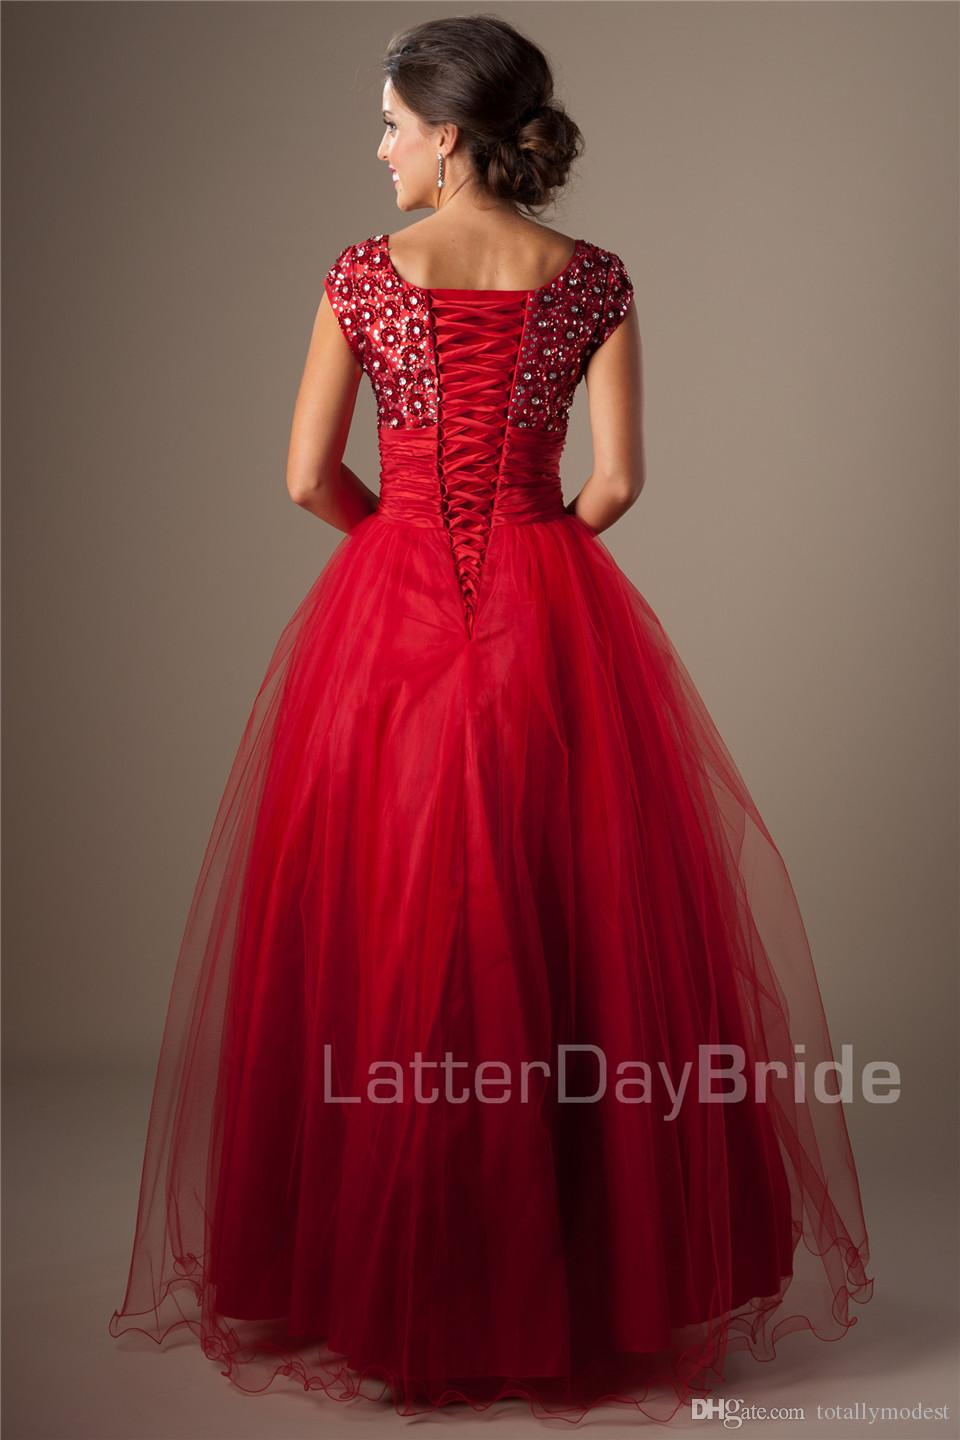 Red Ball Gown Modest Prom Dresses With Cap Sleeves Square Short Sleeves Prom Gowns 2016 Puffy A-line High School Formal Party Gowns Cheap